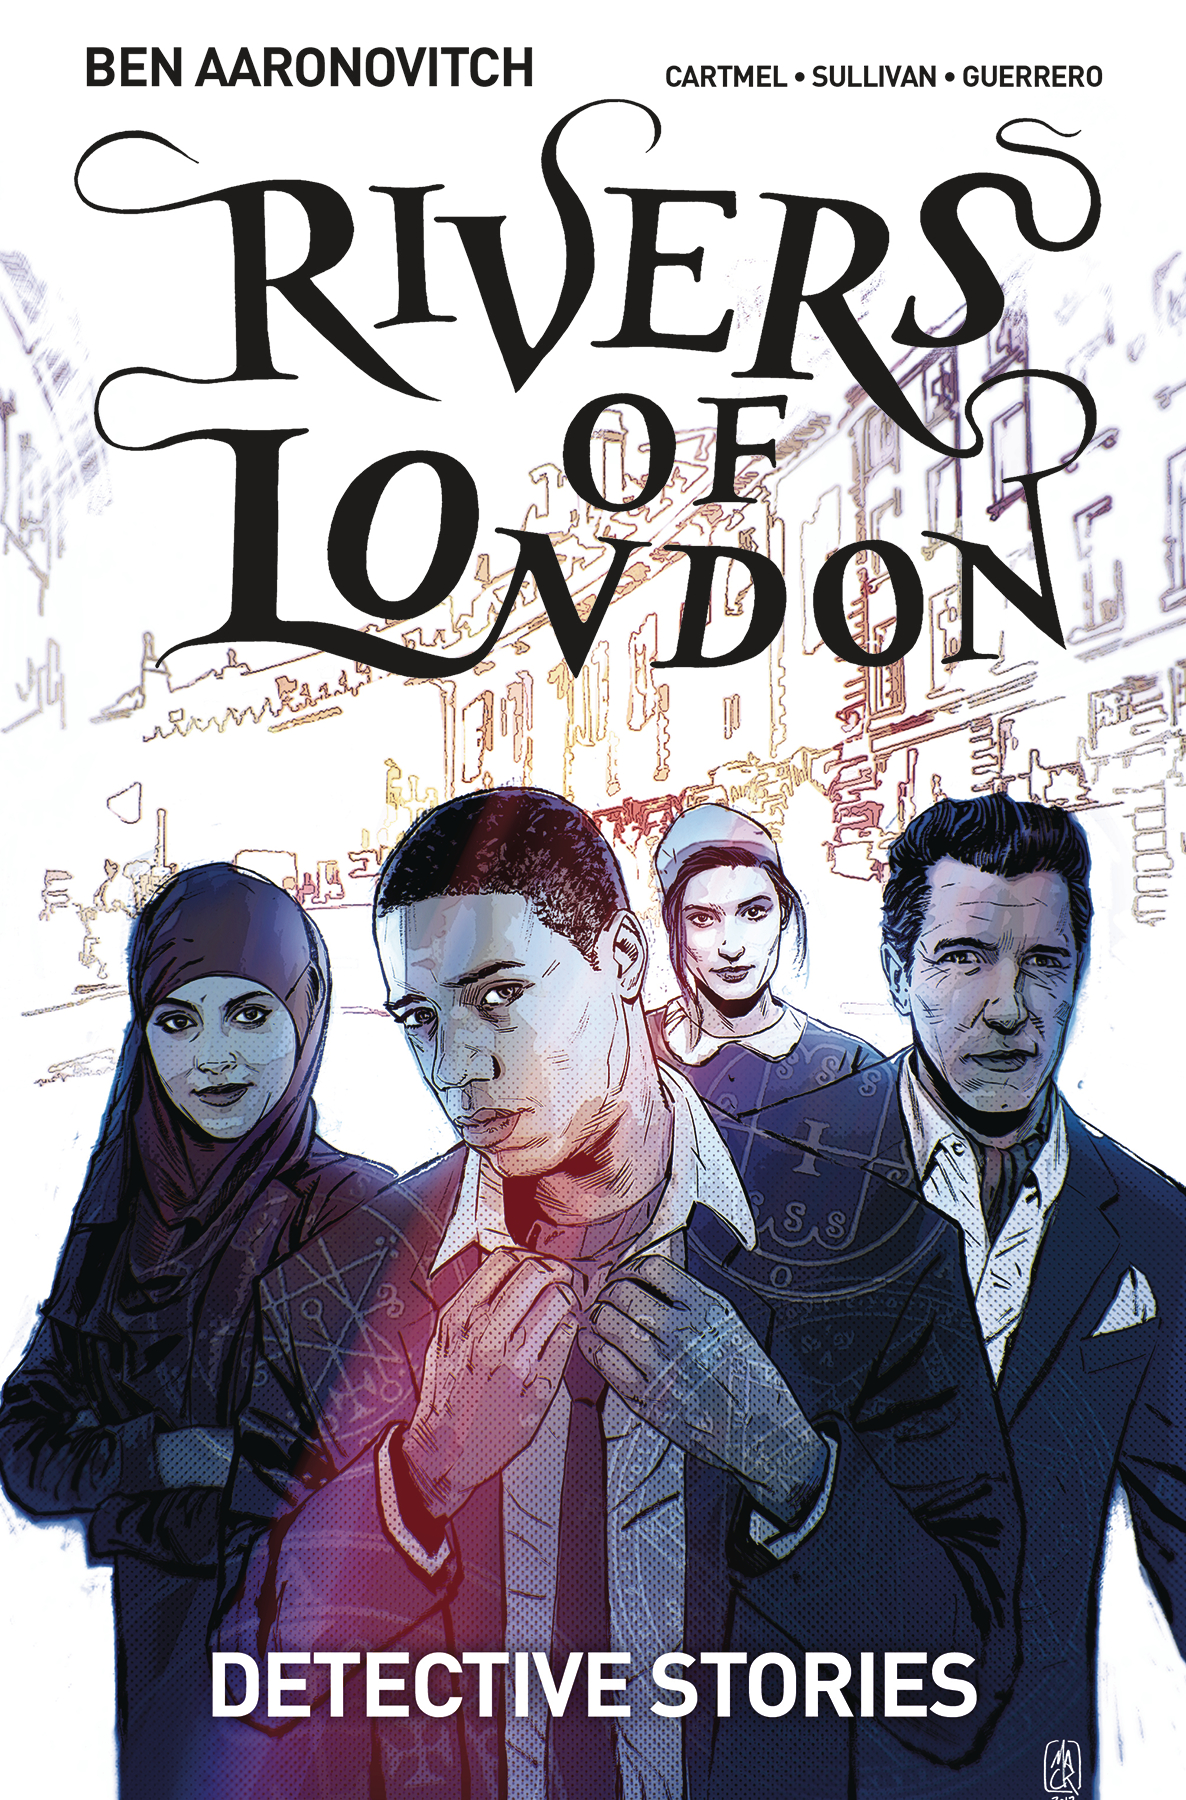 RIVERS OF LONDON TP VOL 04 DETECTIVE STORIES (O/A) (MR)